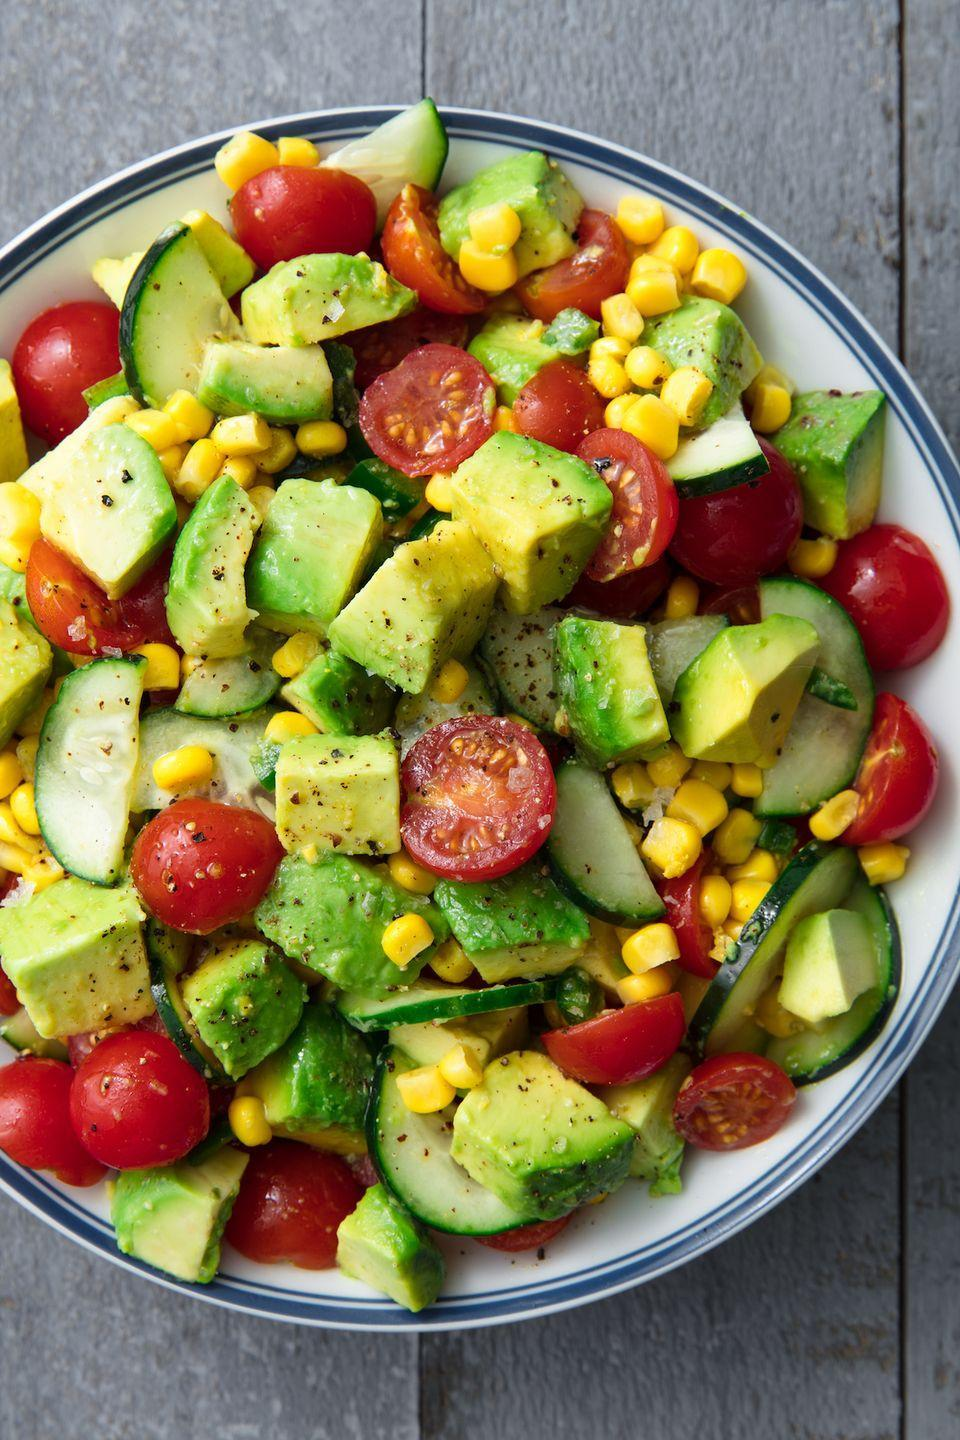 """<p>Ever wish you could eat guacamole for lunch? Now you can.</p><p>Get the recipe from <a href=""""https://www.delish.com/cooking/recipe-ideas/a19872947/avocado-tomato-salad-recipe/"""" rel=""""nofollow noopener"""" target=""""_blank"""" data-ylk=""""slk:Delish"""" class=""""link rapid-noclick-resp"""">Delish</a>. </p>"""